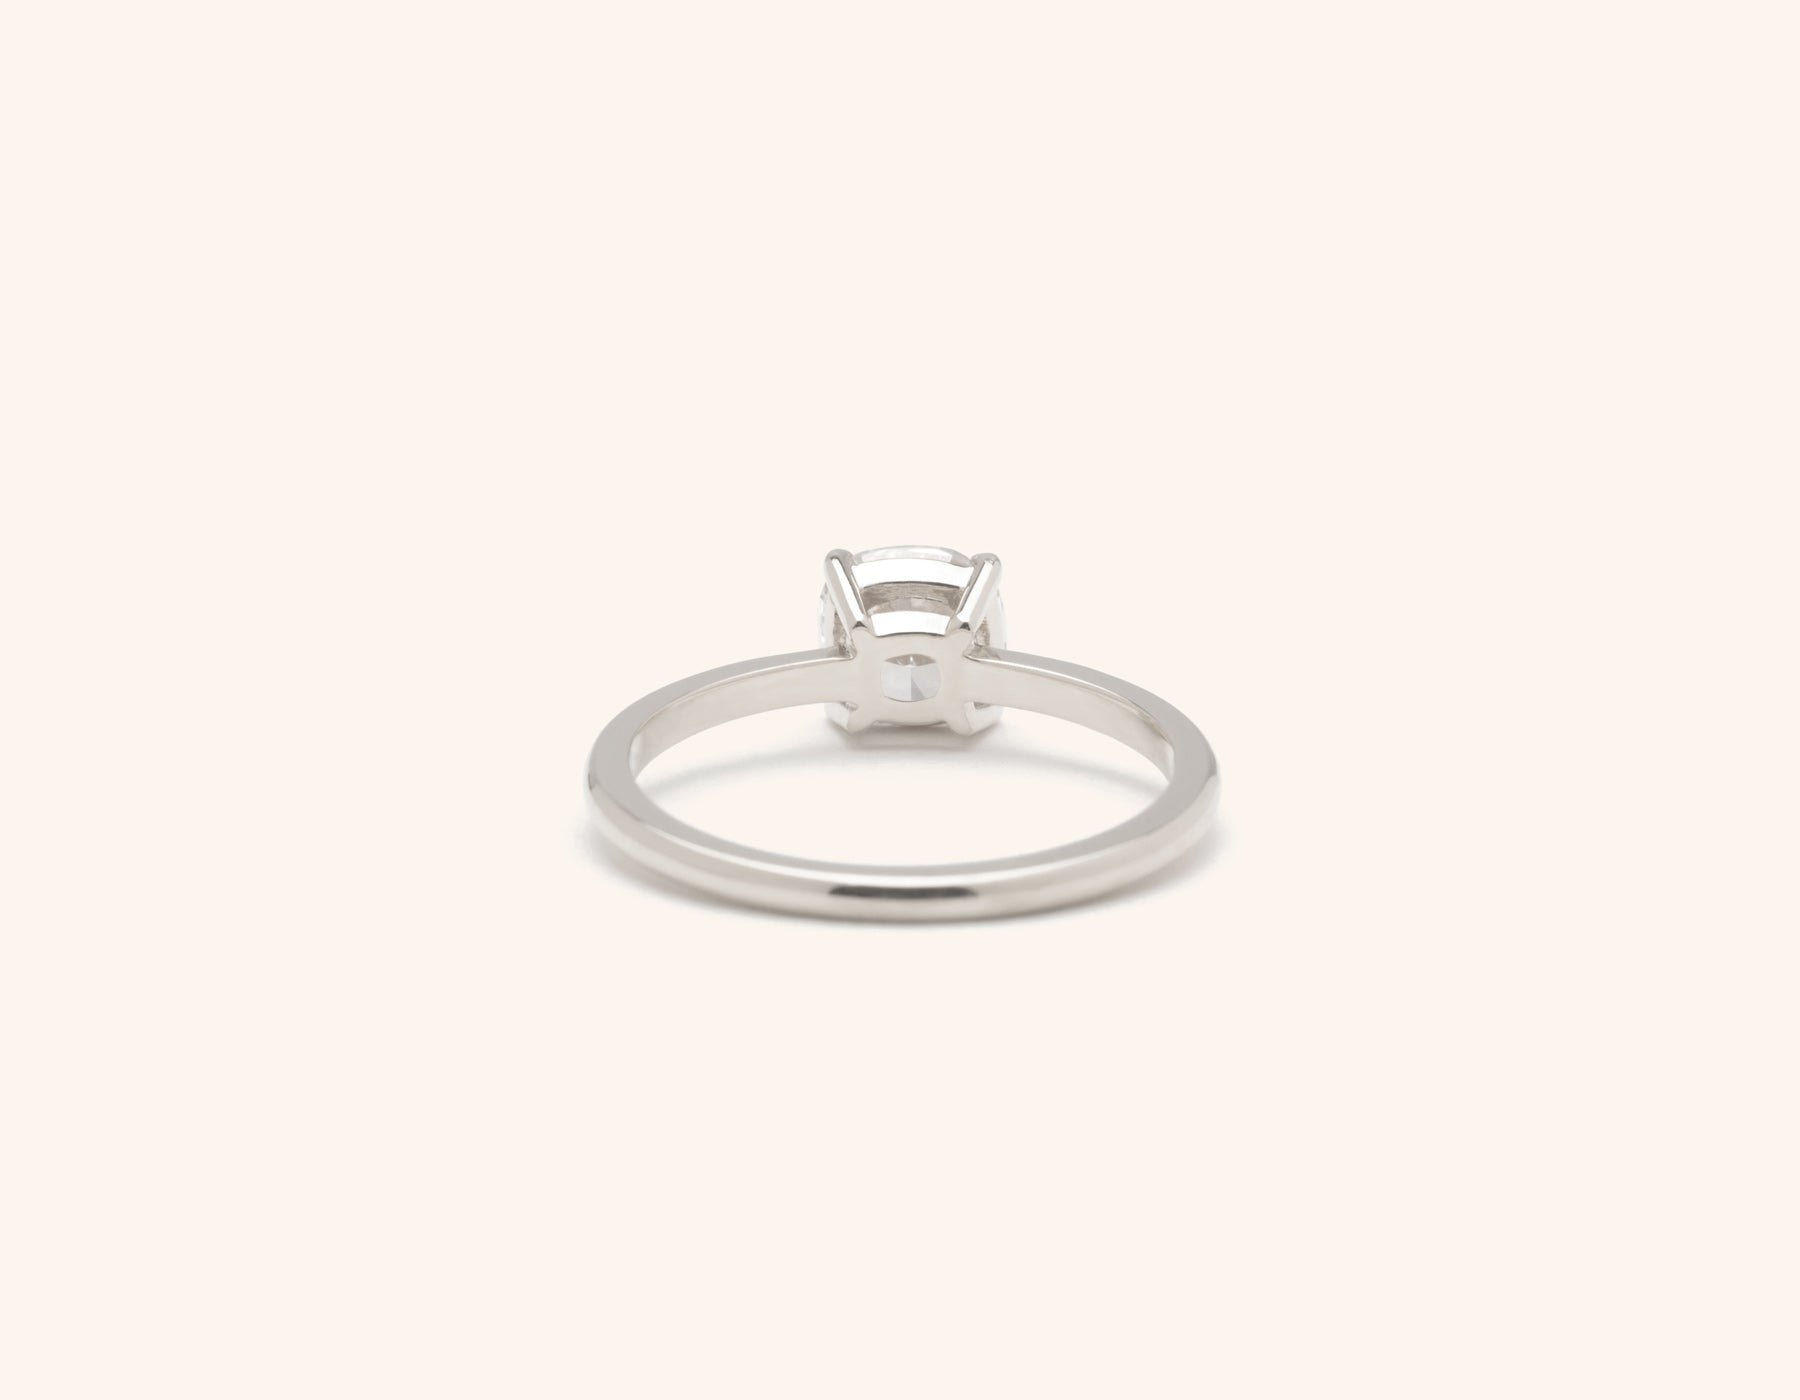 Vrai & Oro 18k solid white gold Diamond engagement ring The Cushion simple classic band